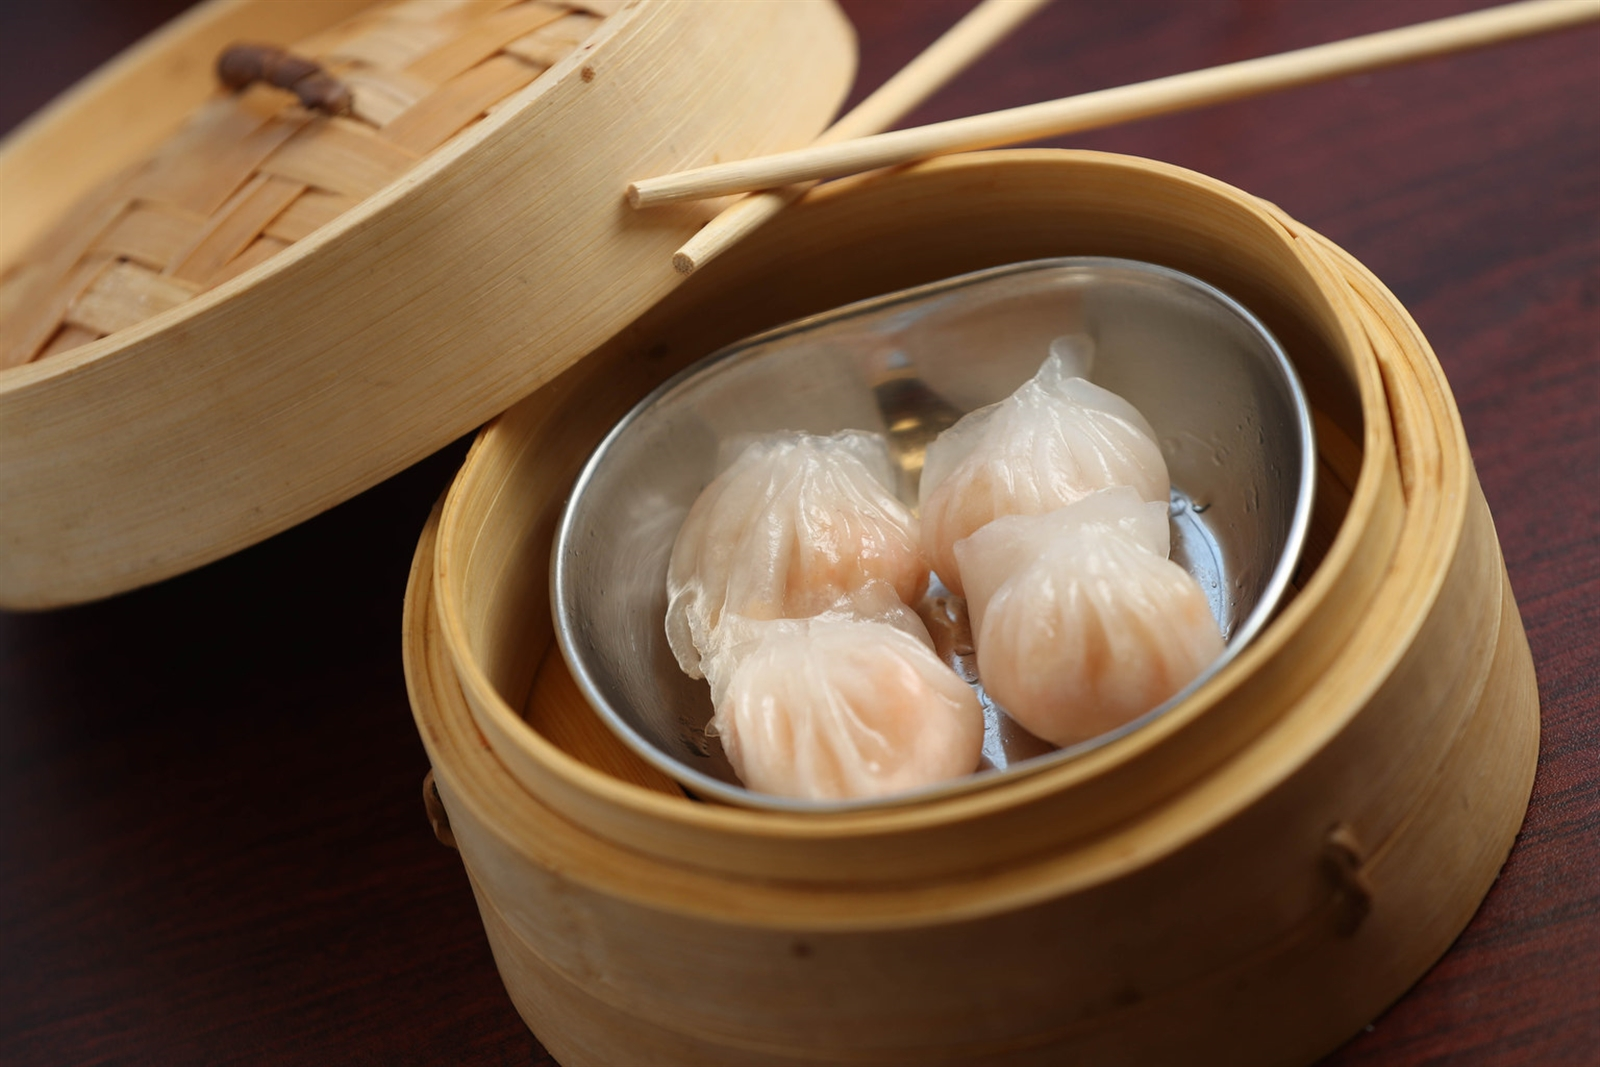 Dim sum is one of the specialties at 007 Chinese Food.  This is their har gow, steamed shrimp dumplings.